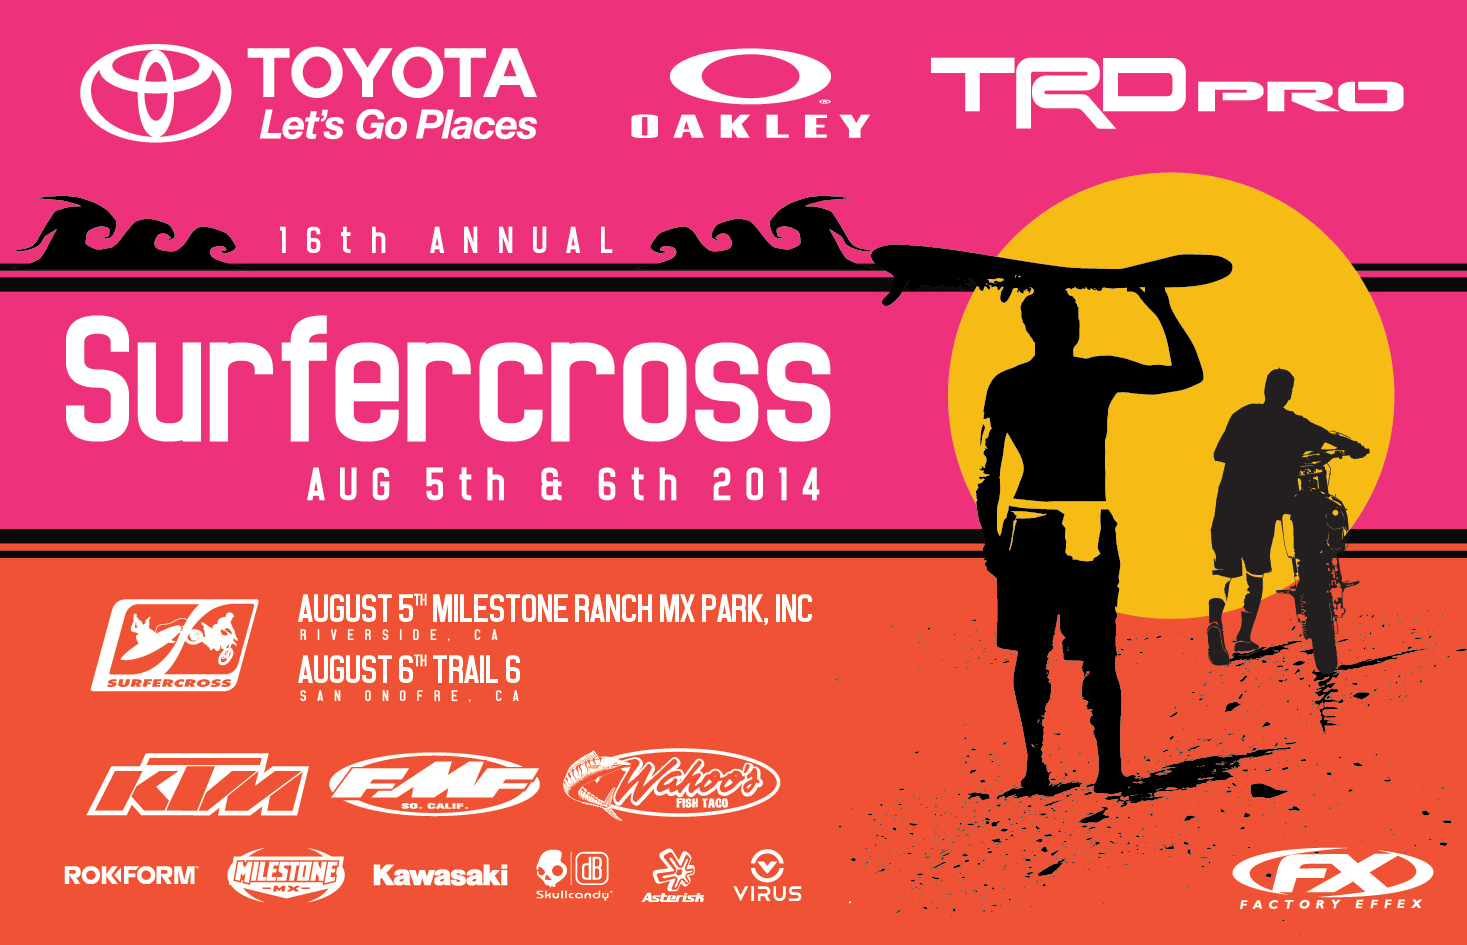 Surfercross TRD Pro Race Effort Launch